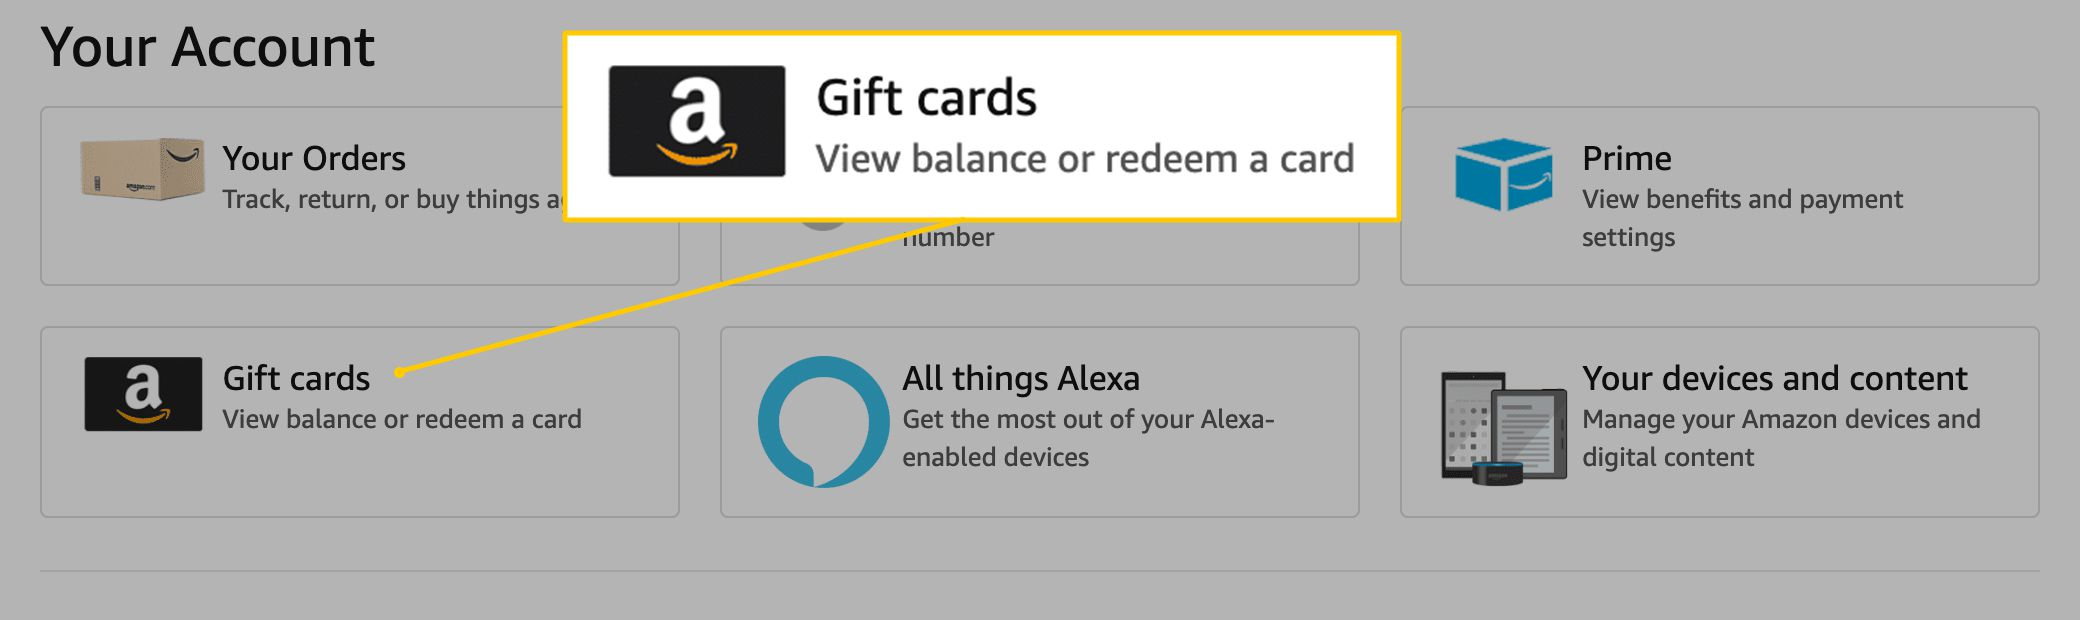 Gift cards button on Amazon